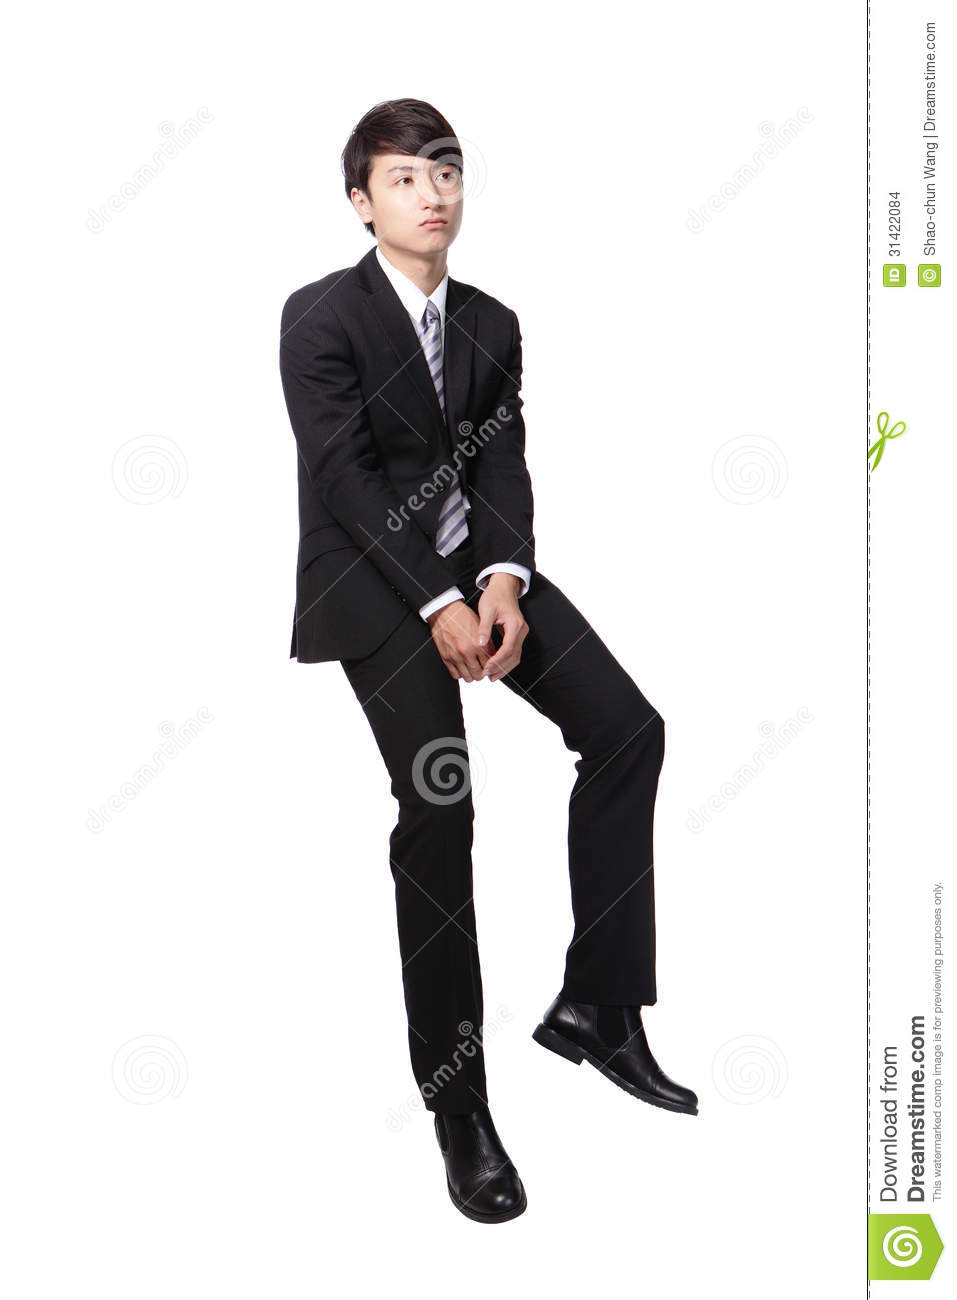 Frustrated business man sitting on something